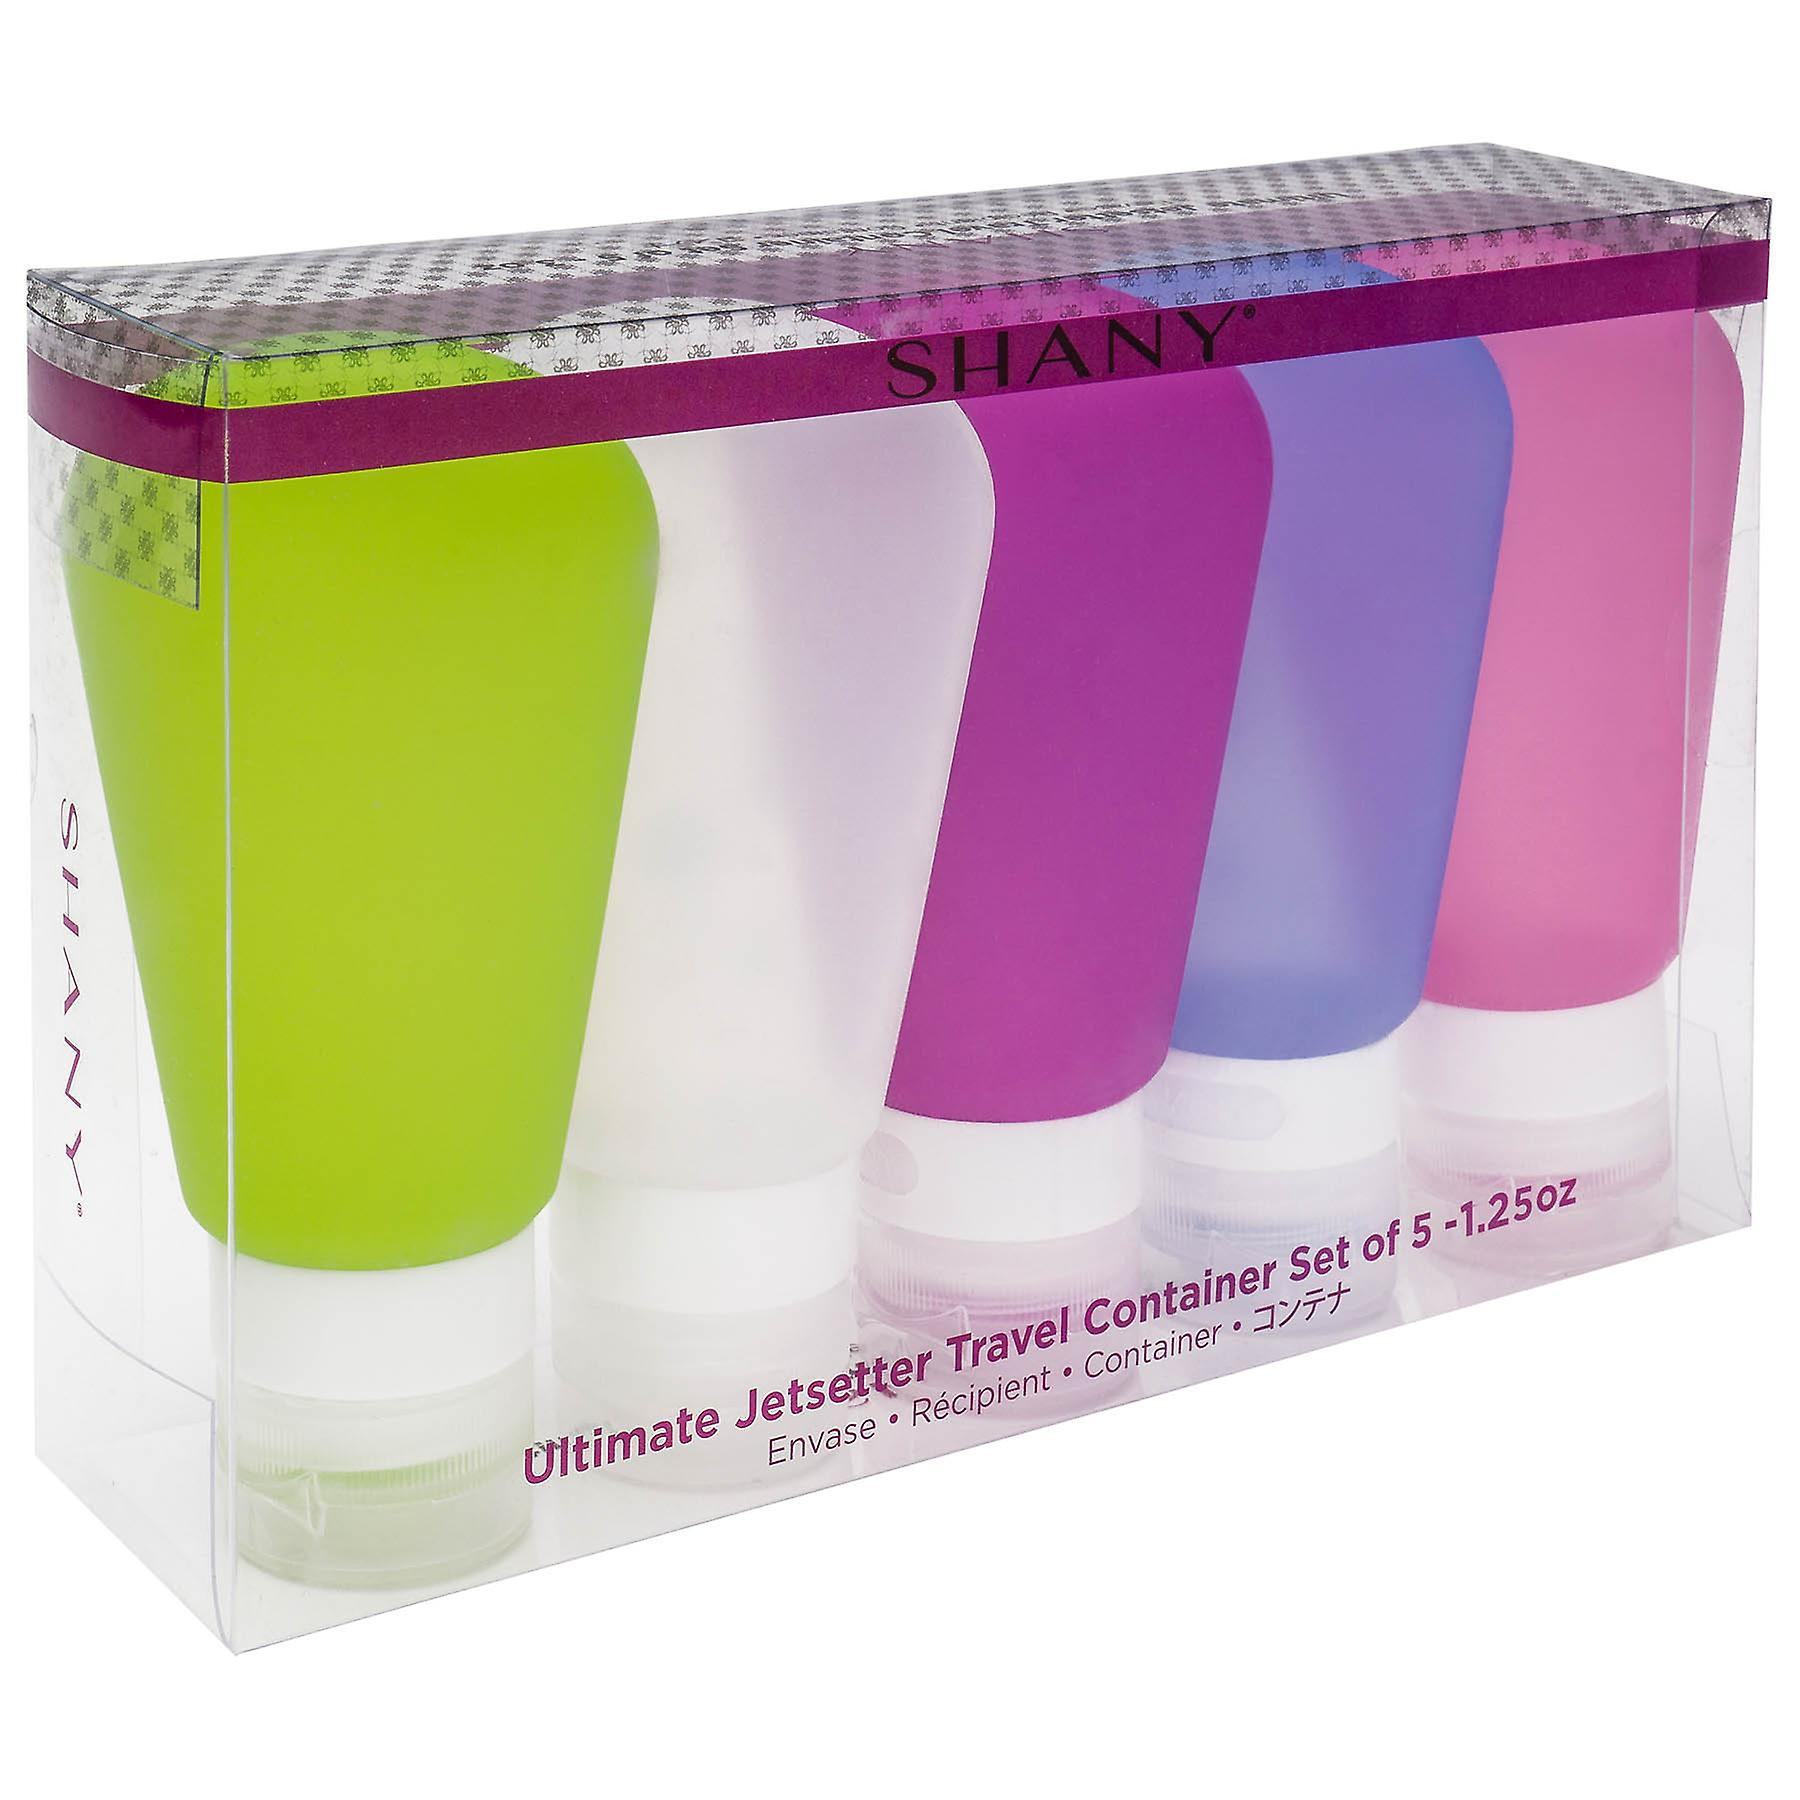 SHANY Ultimate Jetsetter Travel Container Set - TSA Approved Silicone Refillable Cosmetic Bottles - 1.25 oz (37 ml) - Pack of 5